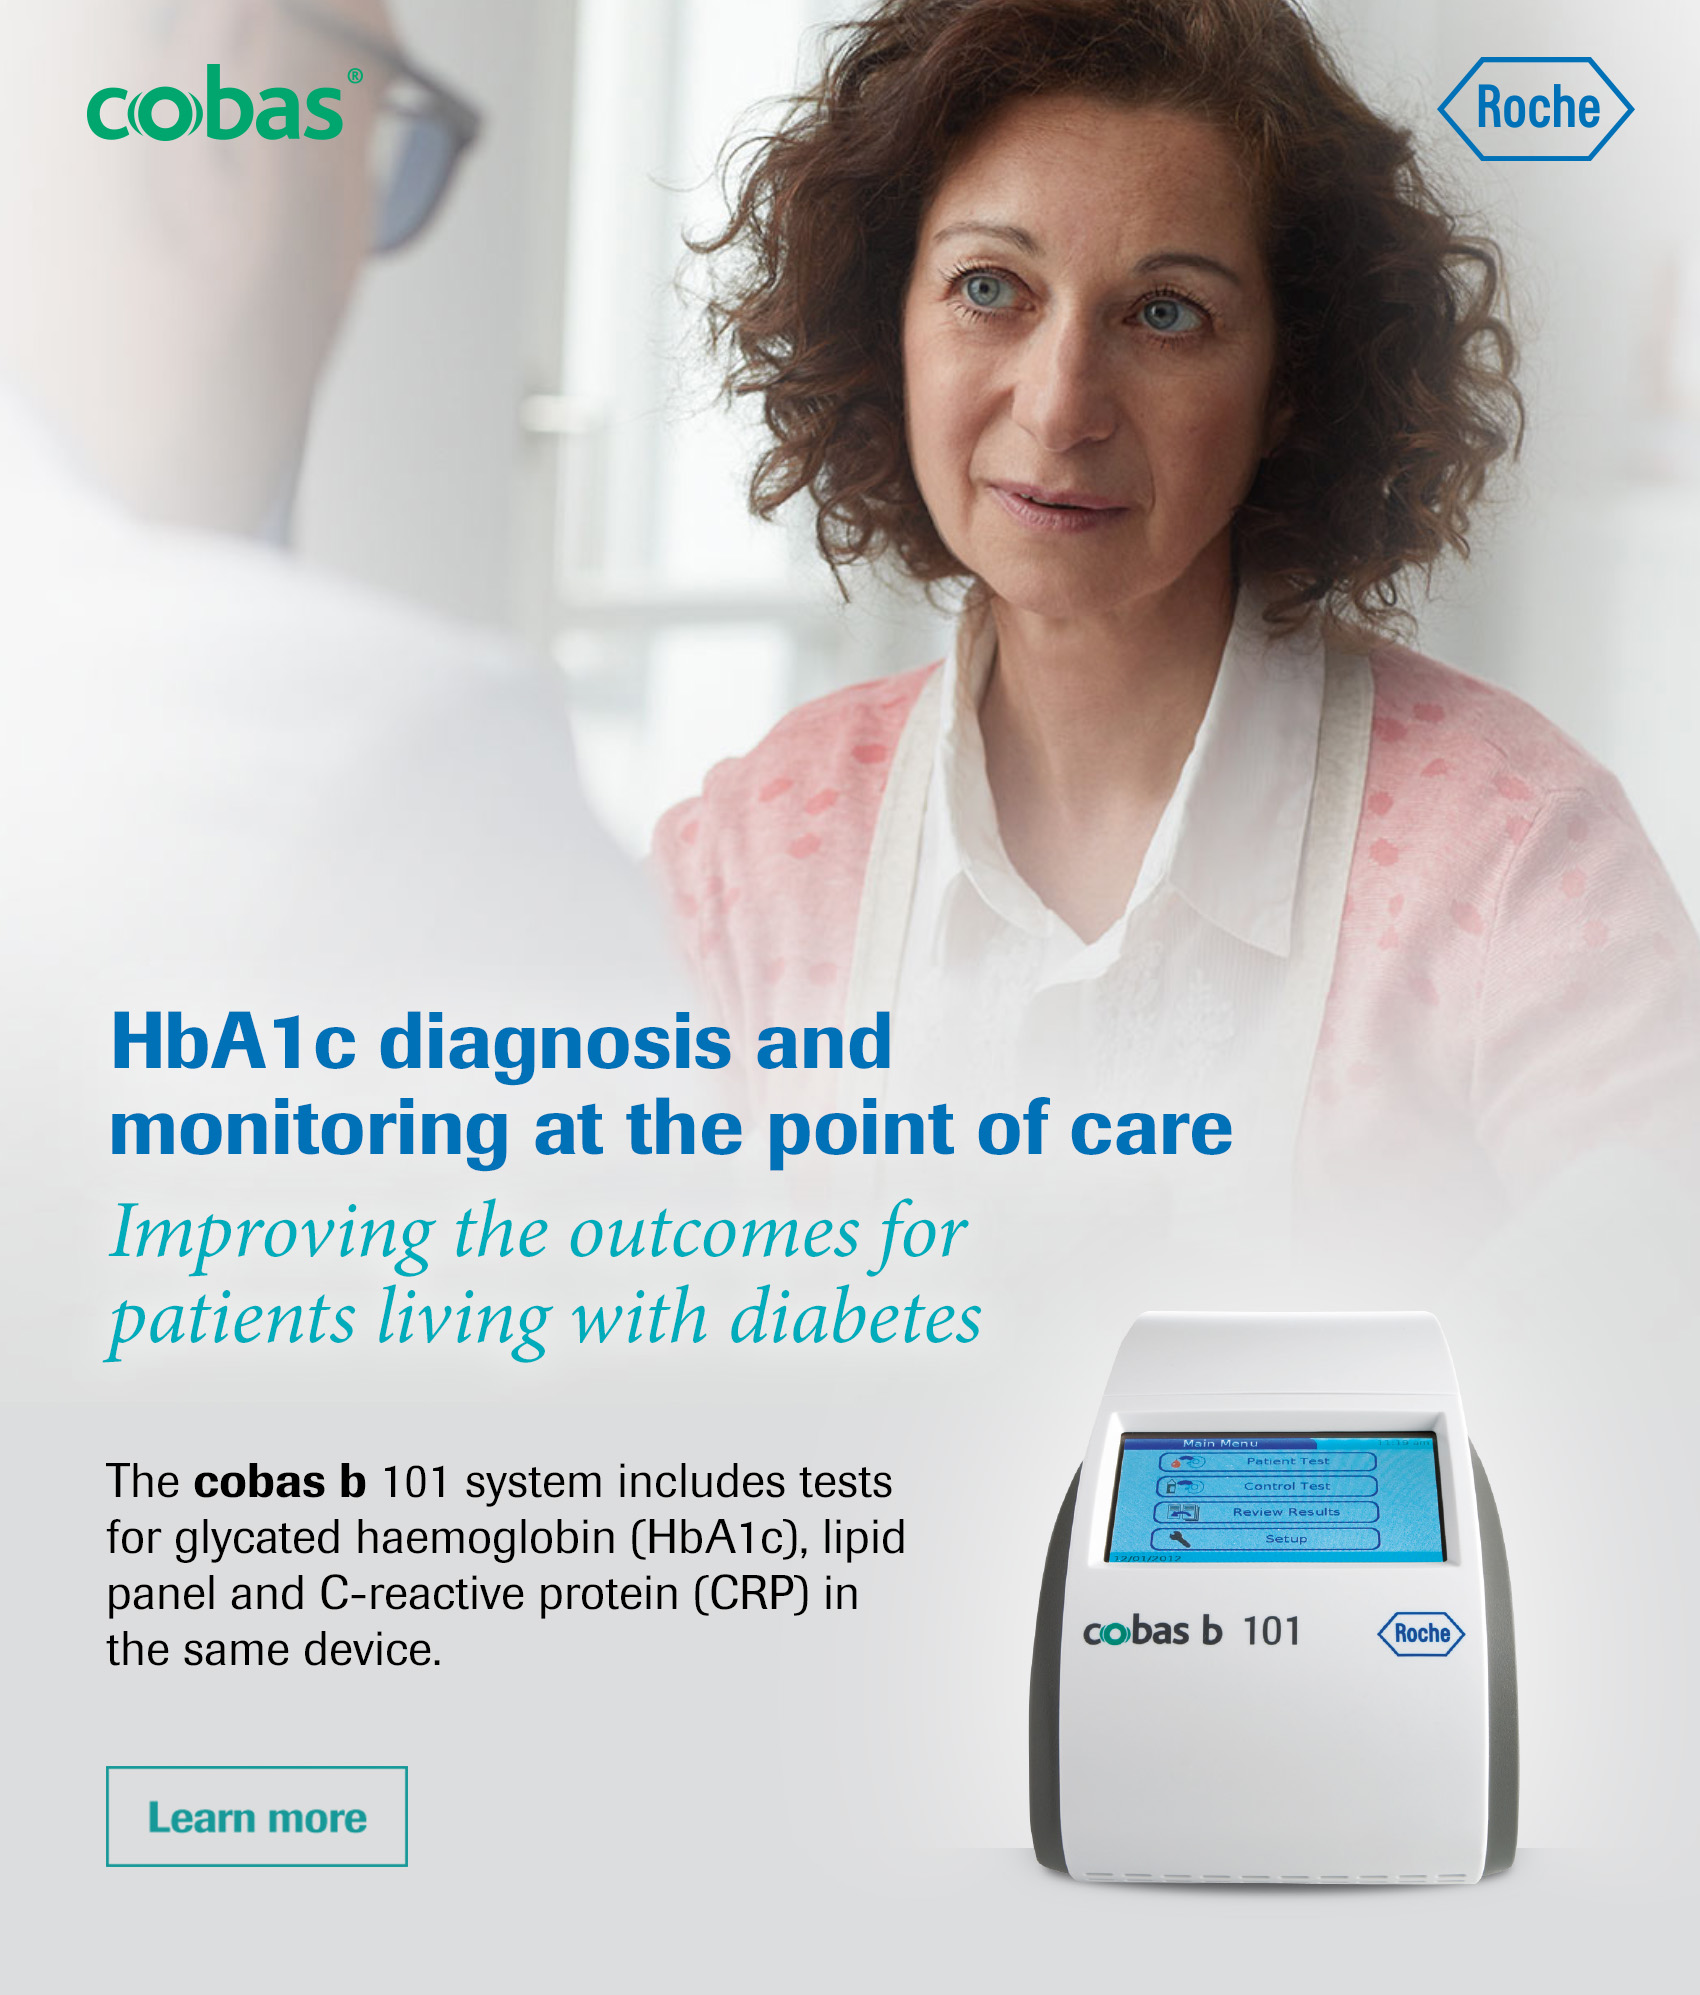 HbA1c diagnosis and monitoring at the point of care Improving the outcomes for patients living with diabetes